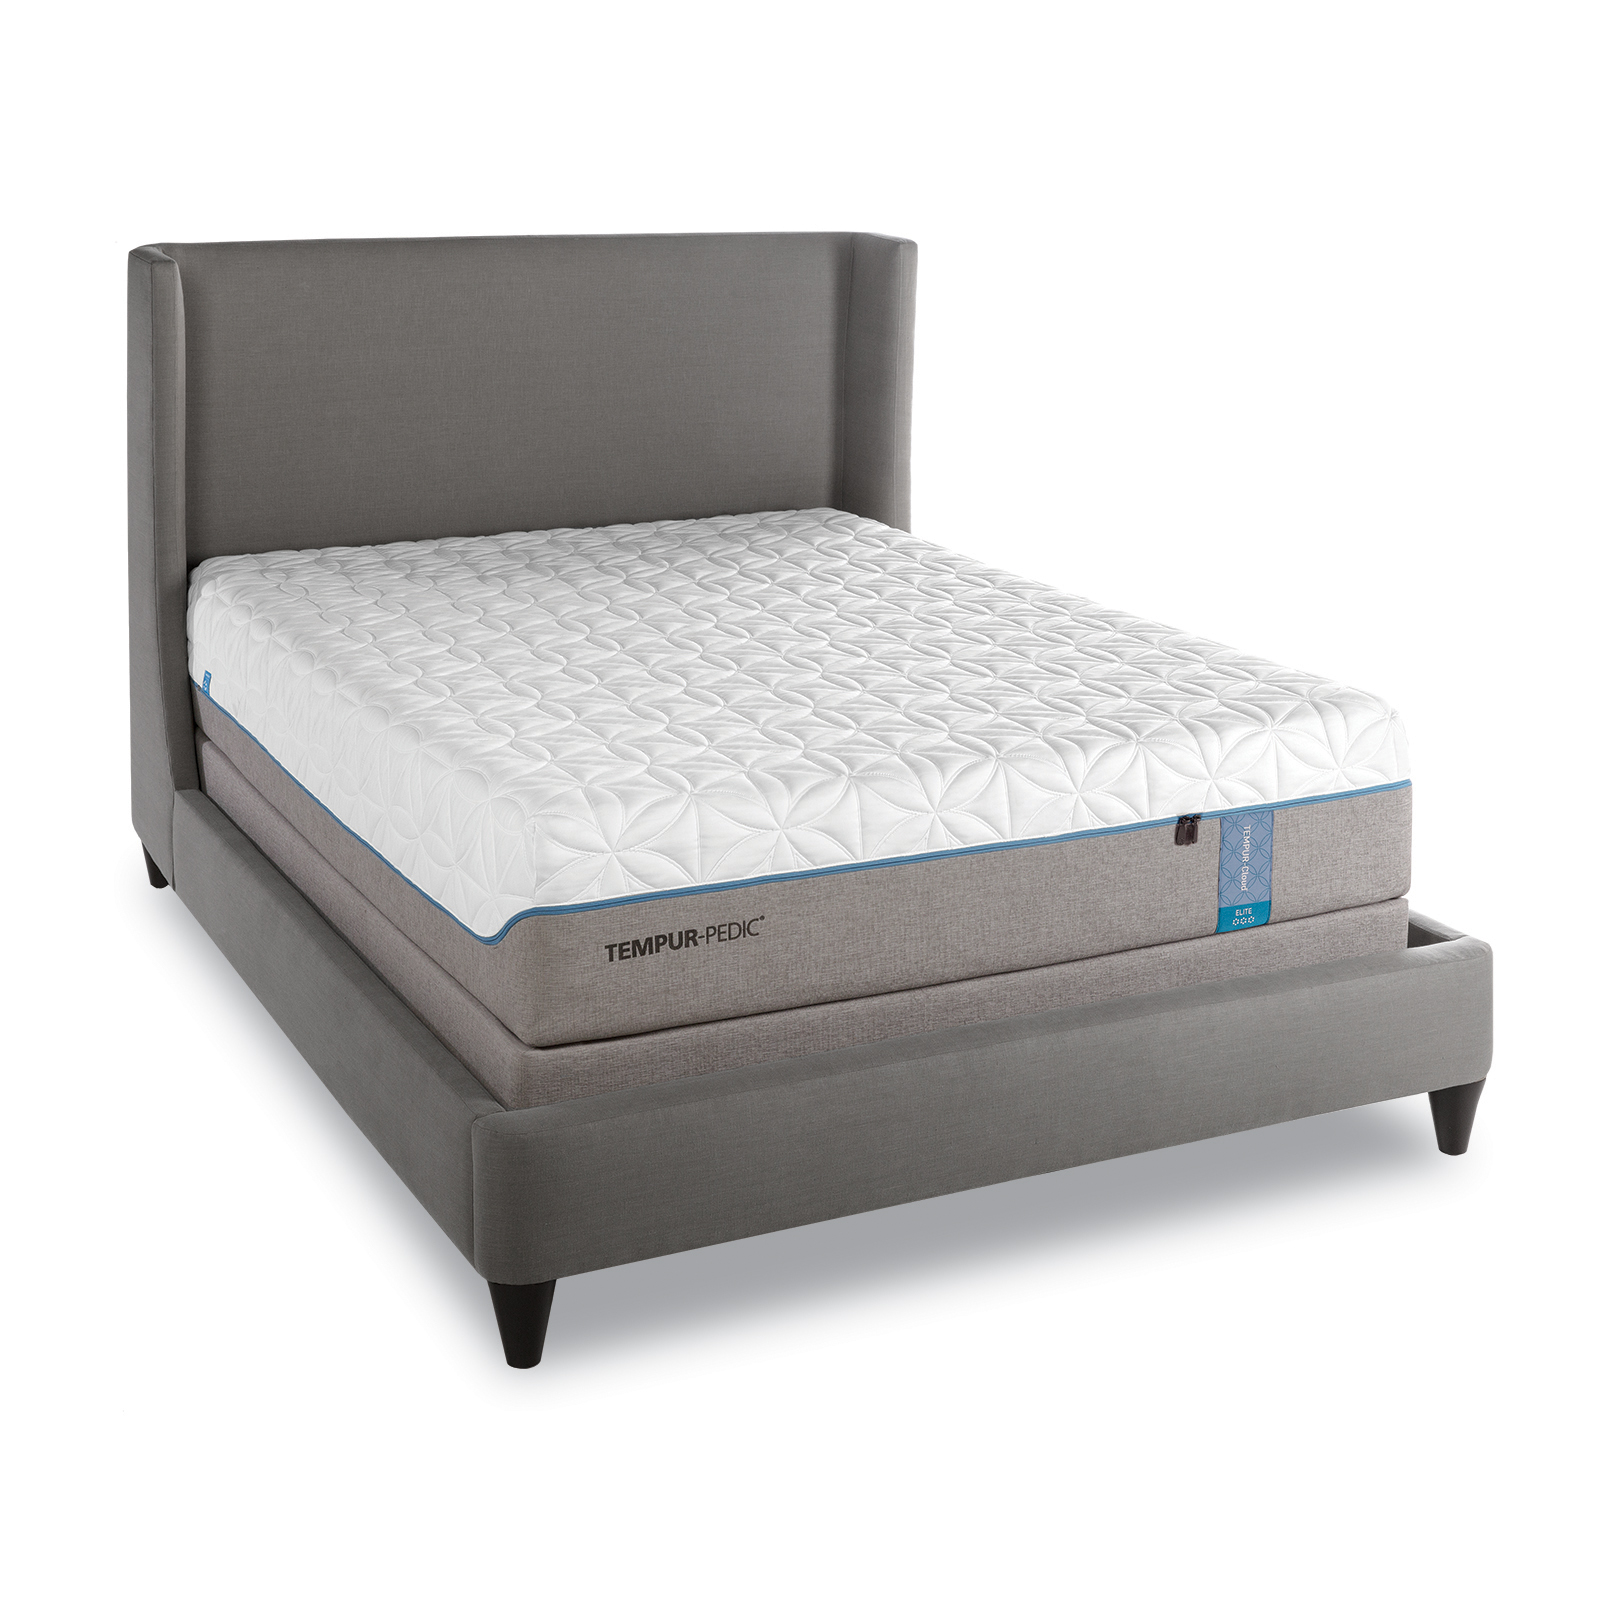 Tempurpedic Mattress King Size Tempur Pedic Tempur Cloud Elite King Mattress